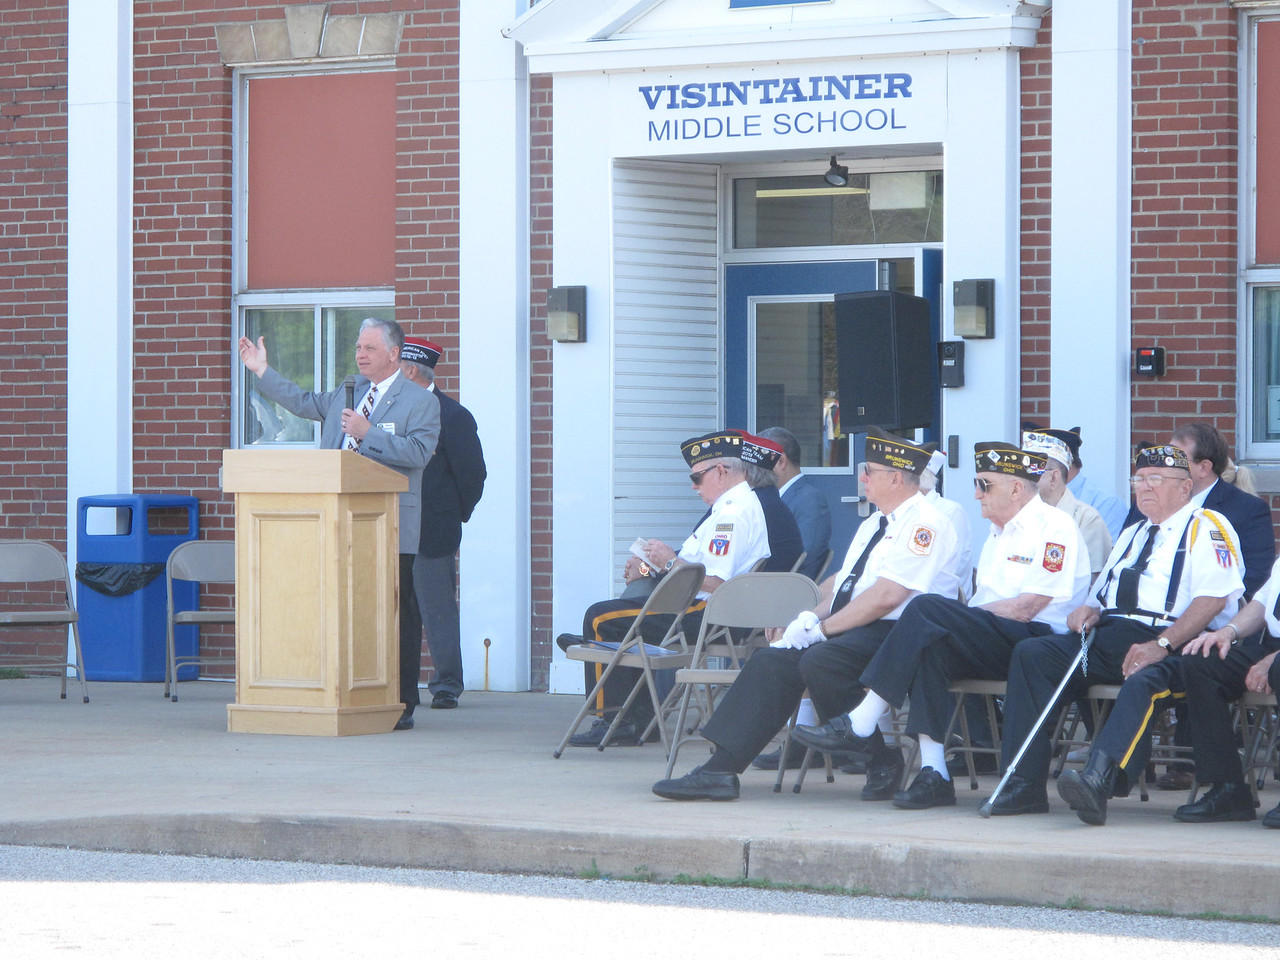 ELIZABETH DOBBINS/GAZETTE State Rep. Steve Hambley, R-Brunswick, speaks during a Memorial Day ceremony Monday at Visintainer Middle School in Brunswick.